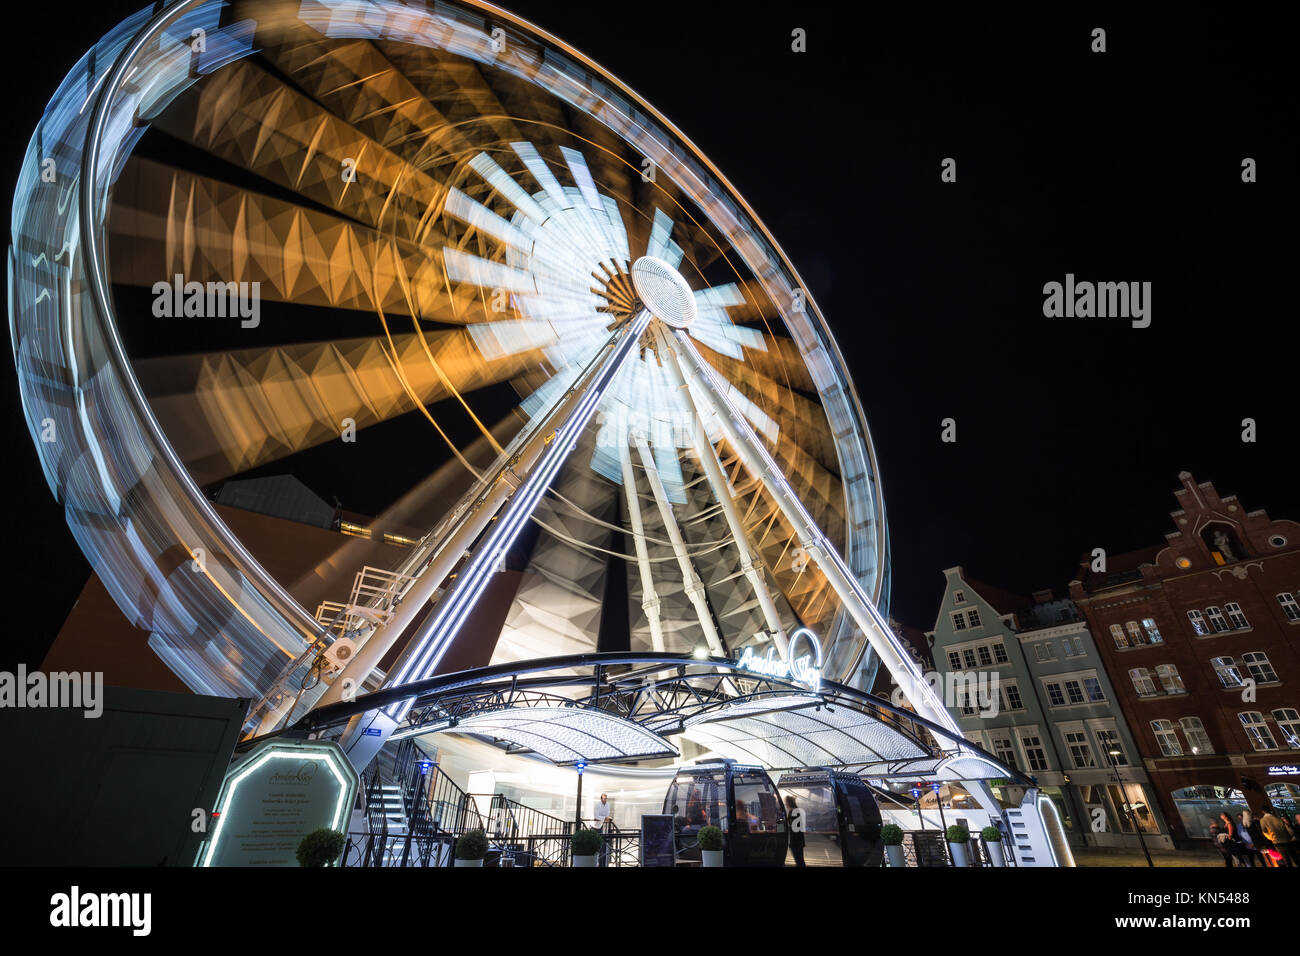 Few people at the lit ferris wheel in motion on the Granary Island in Gdansk, Poland, at night. - Stock Image